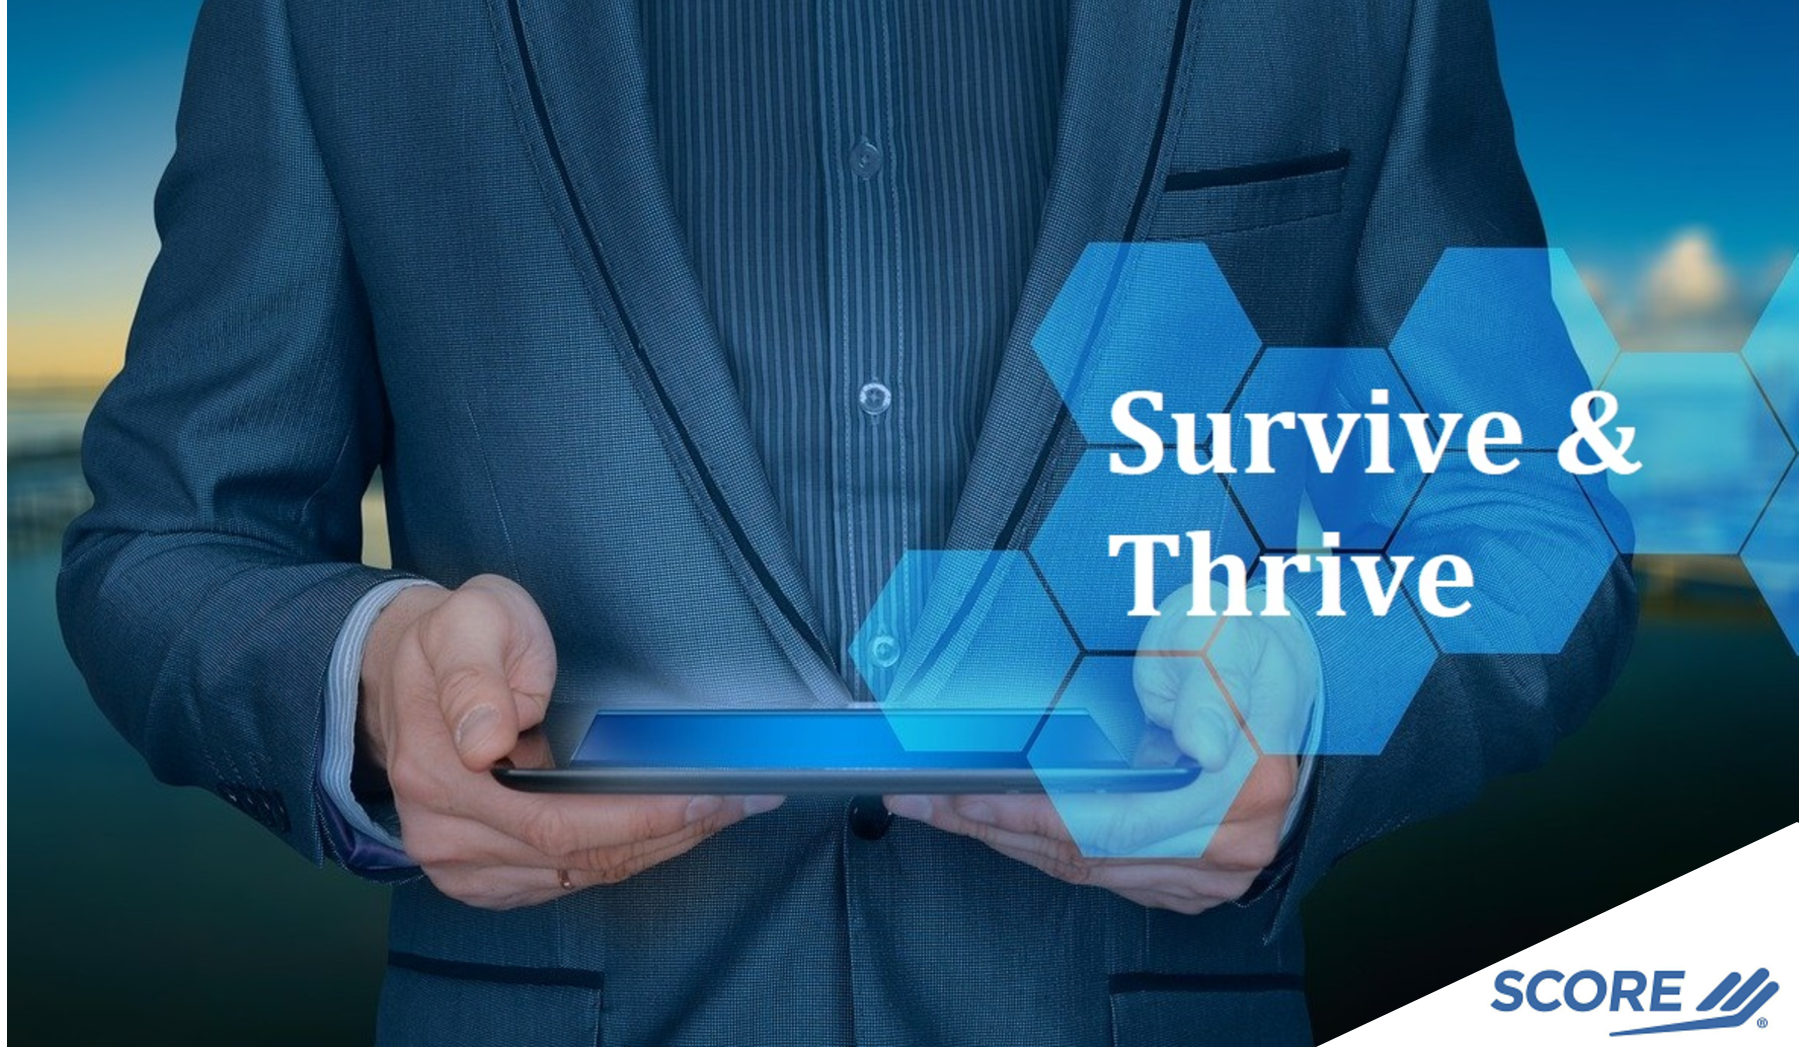 SCORE Manasota Continues IT Virtual Forum Series SURVIVE & THRIVE in 2021